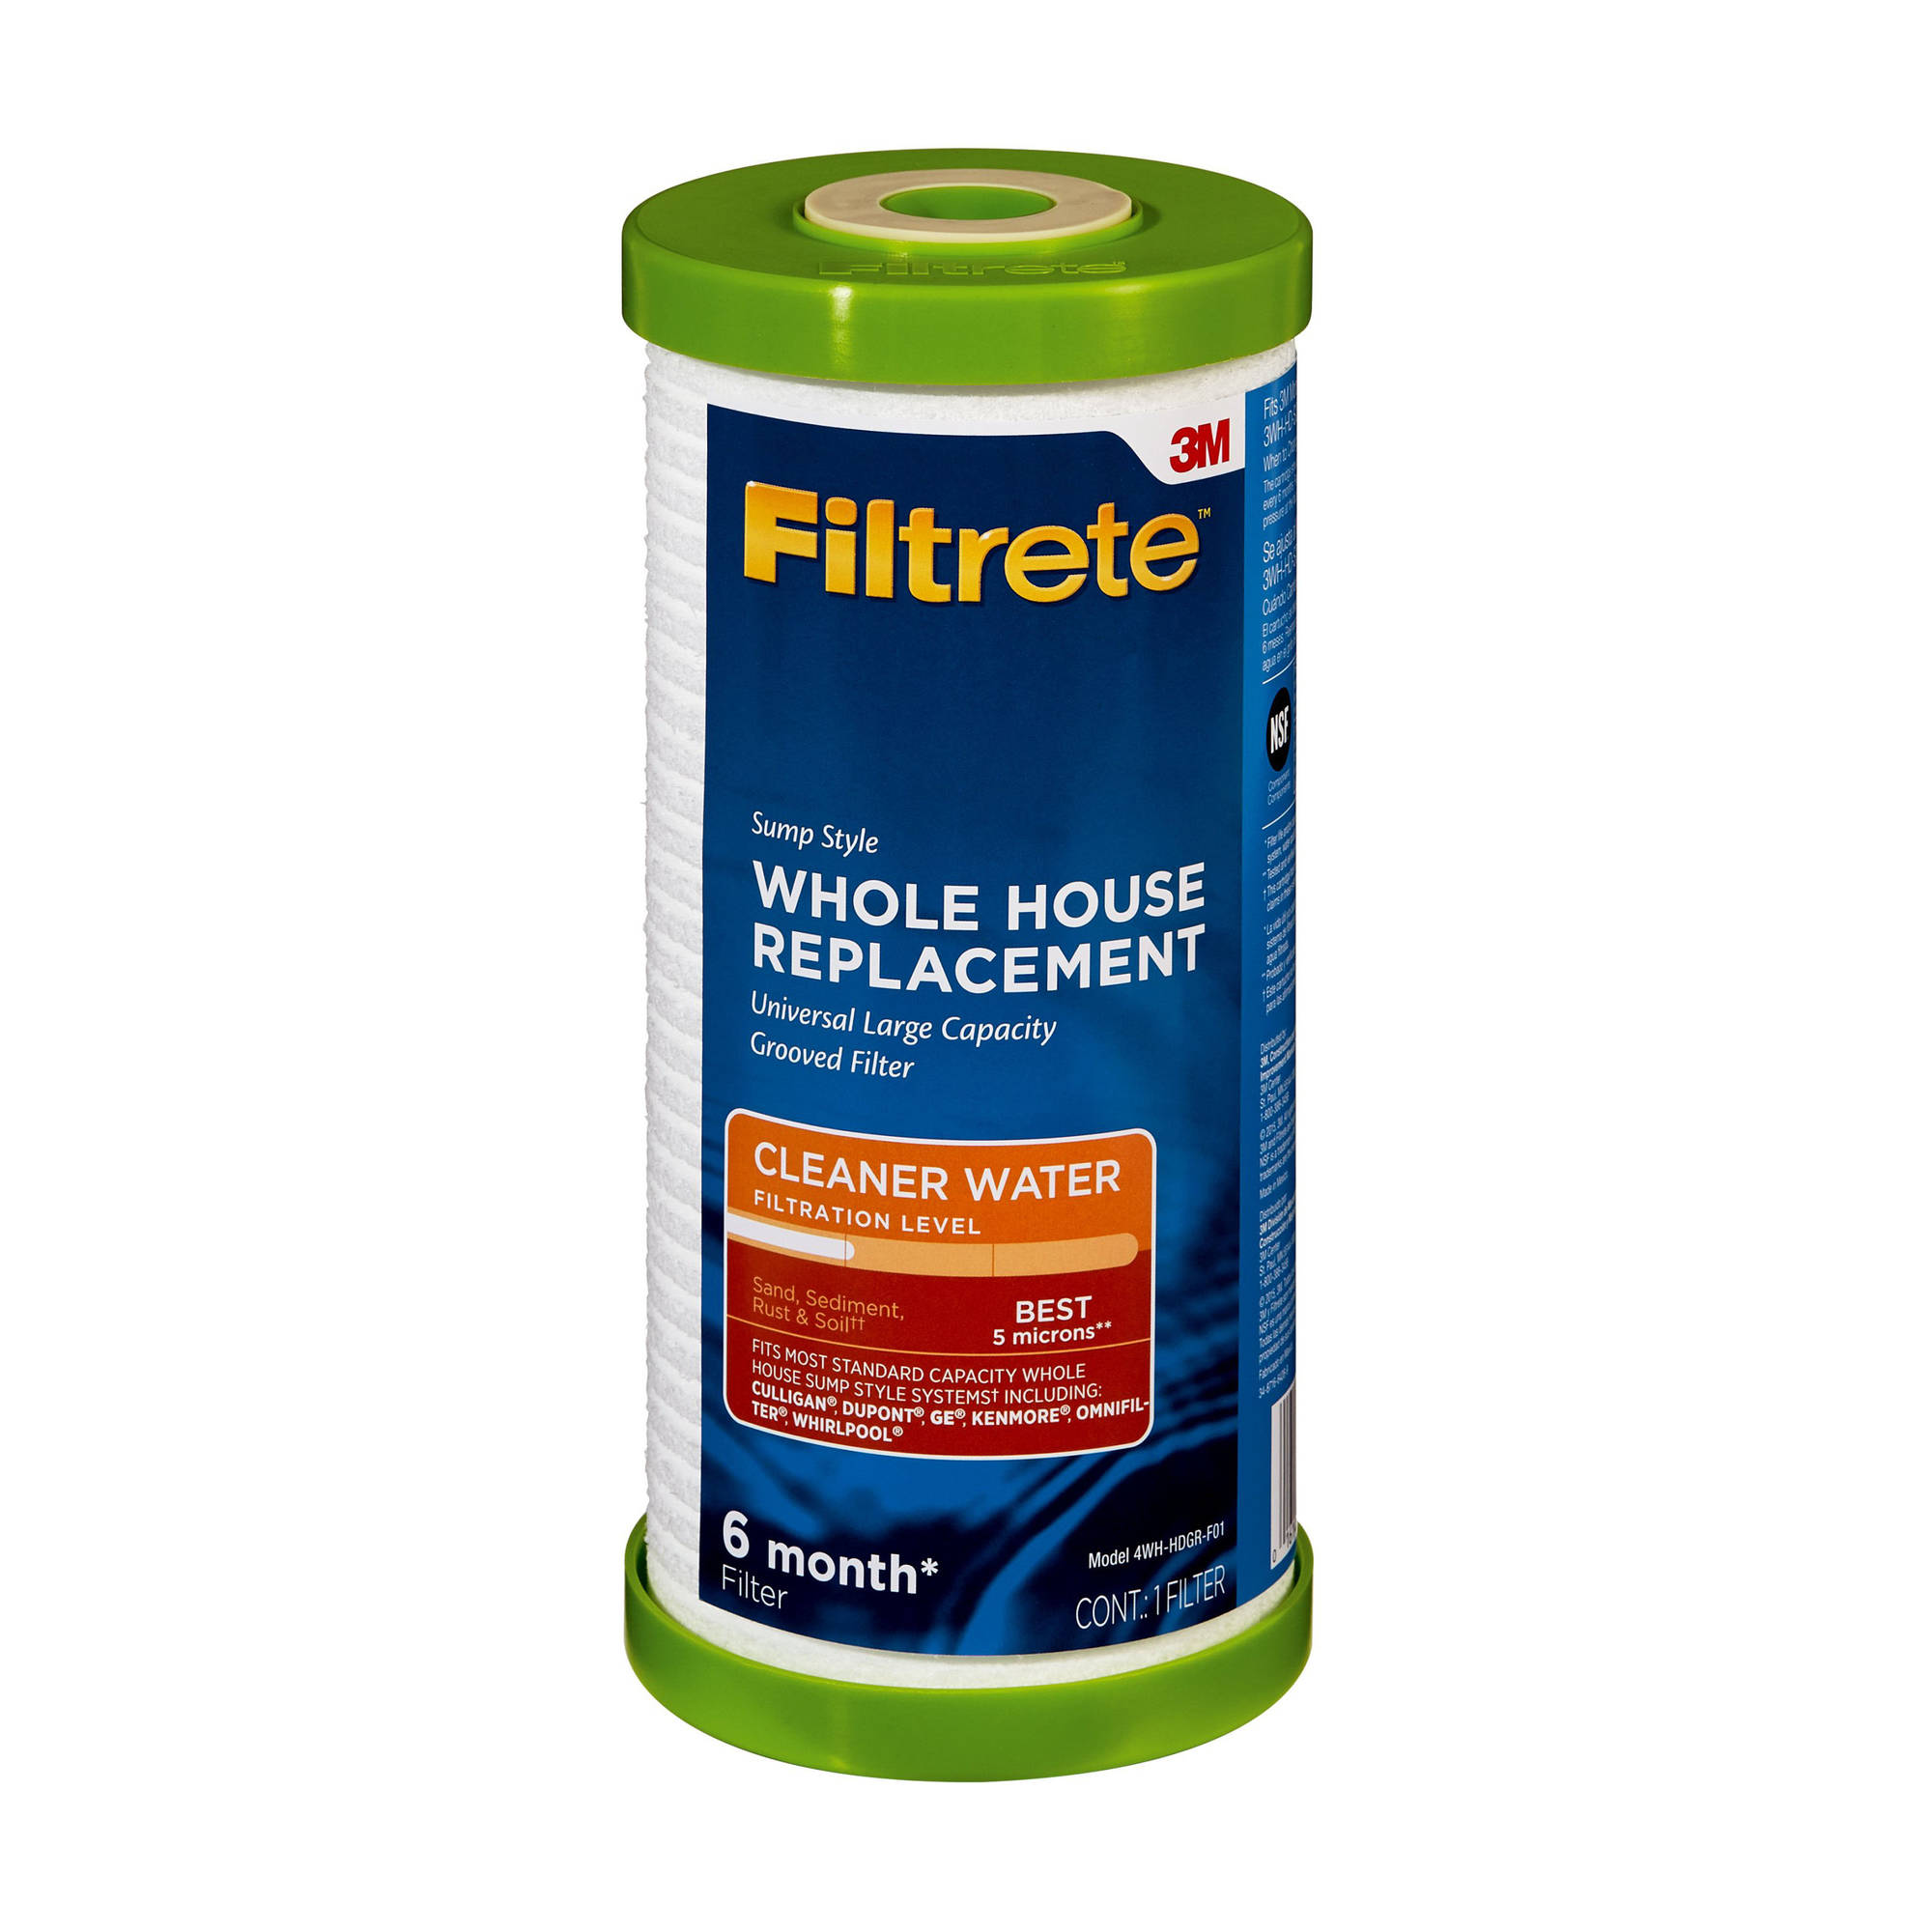 "Filtrete"" Large Capacity, Grooved Replacement Filter, Sump Style (sediment - best) - 1 pack"